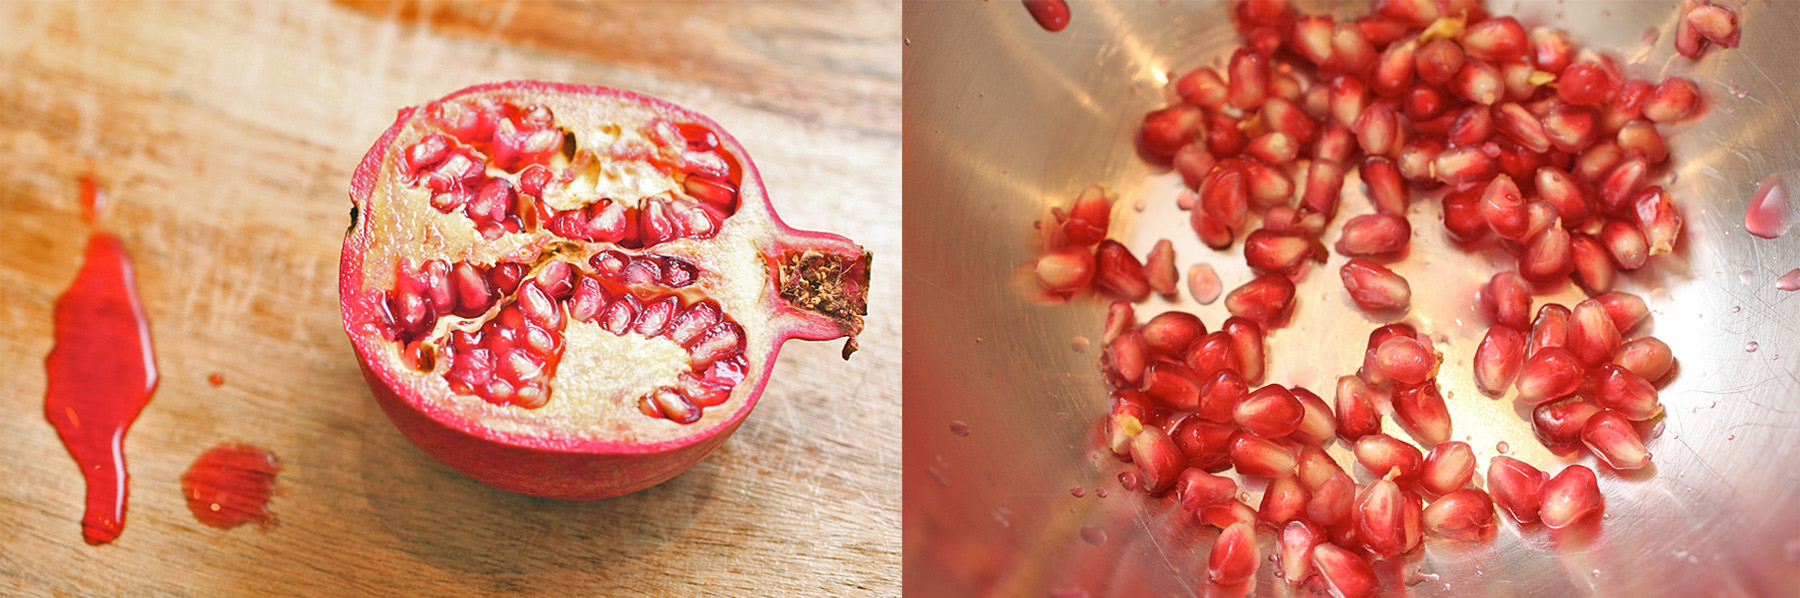 Pomegranate-Rose Milk Pudding